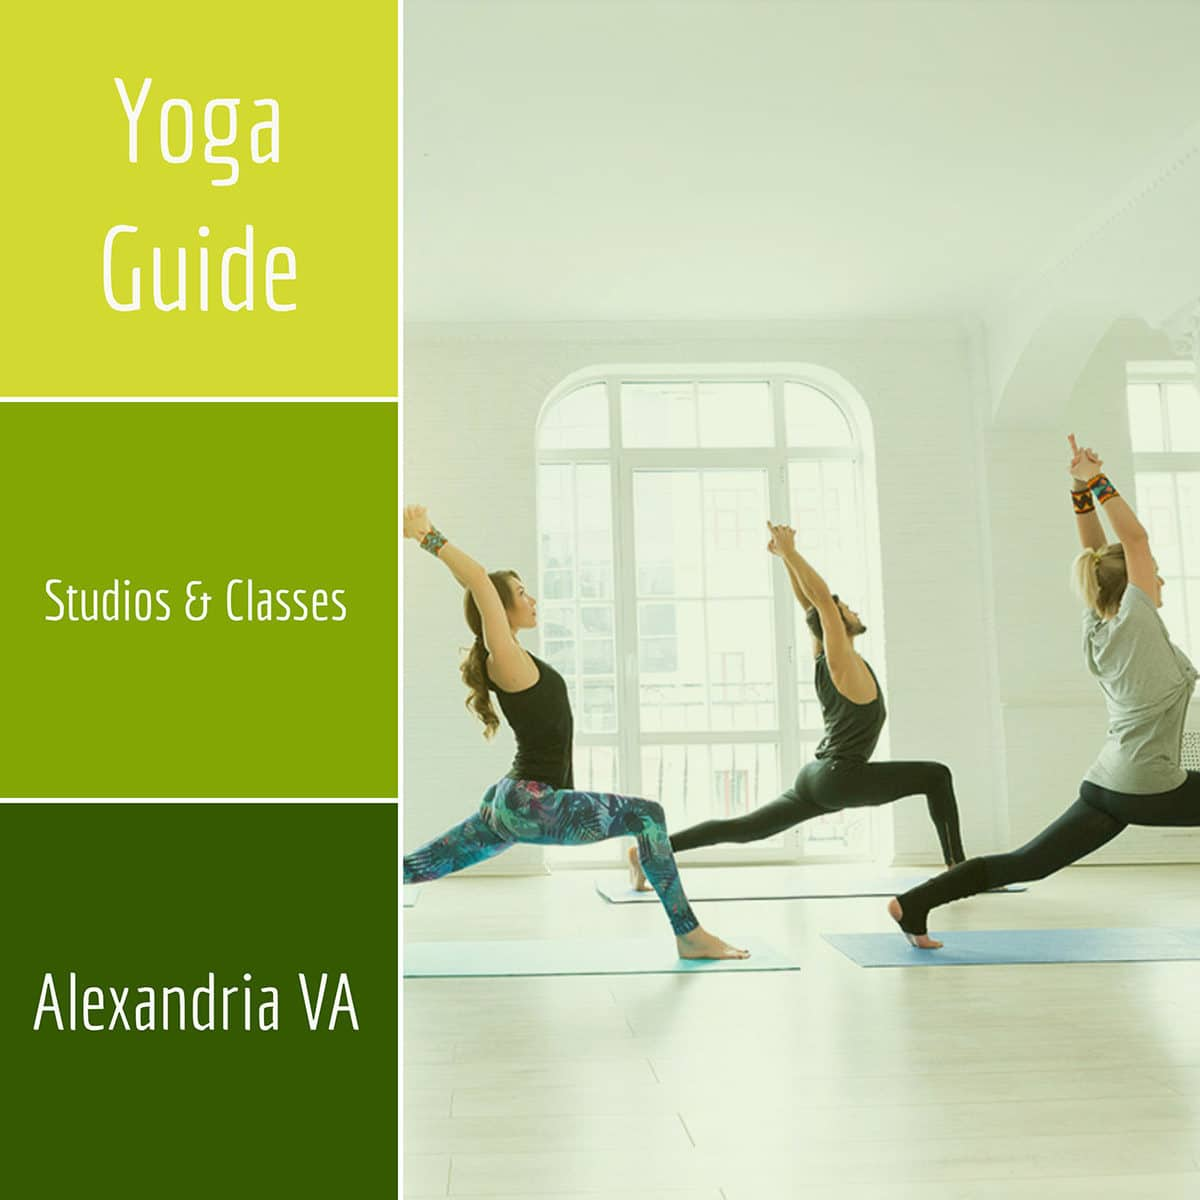 Yoga Alexandria VA Studios & Classes